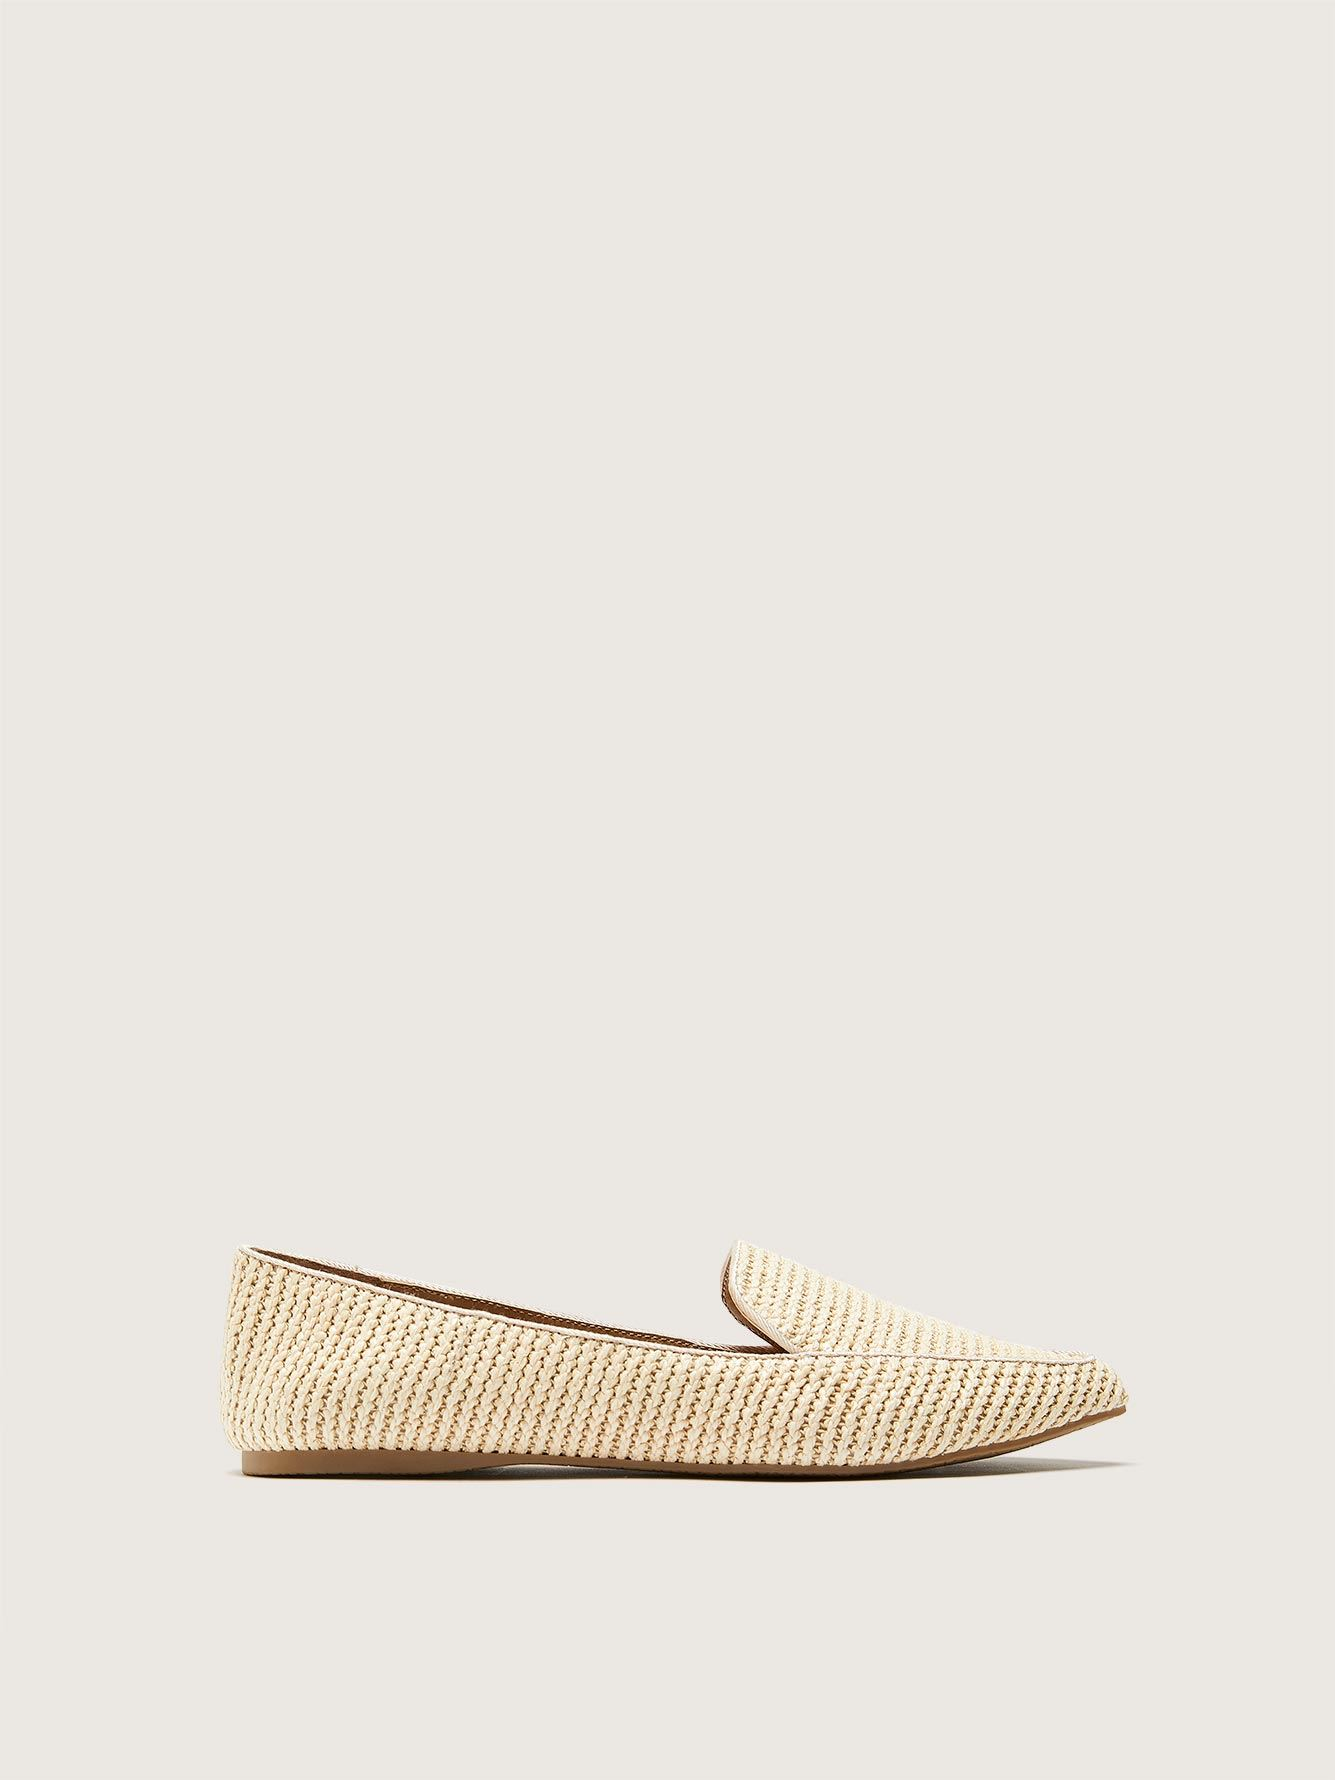 Wide Width Pointed Toe Textile Loafer - Steve Madden